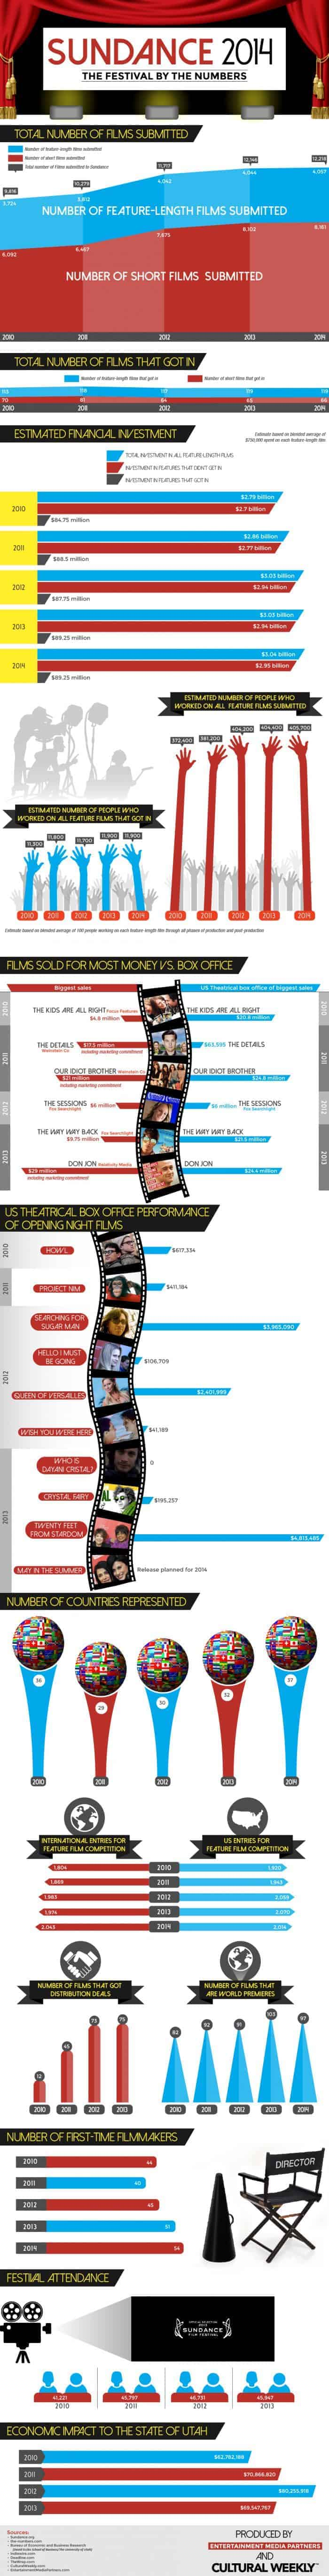 Cultural_Weekly_Sundance_Infographic_2014